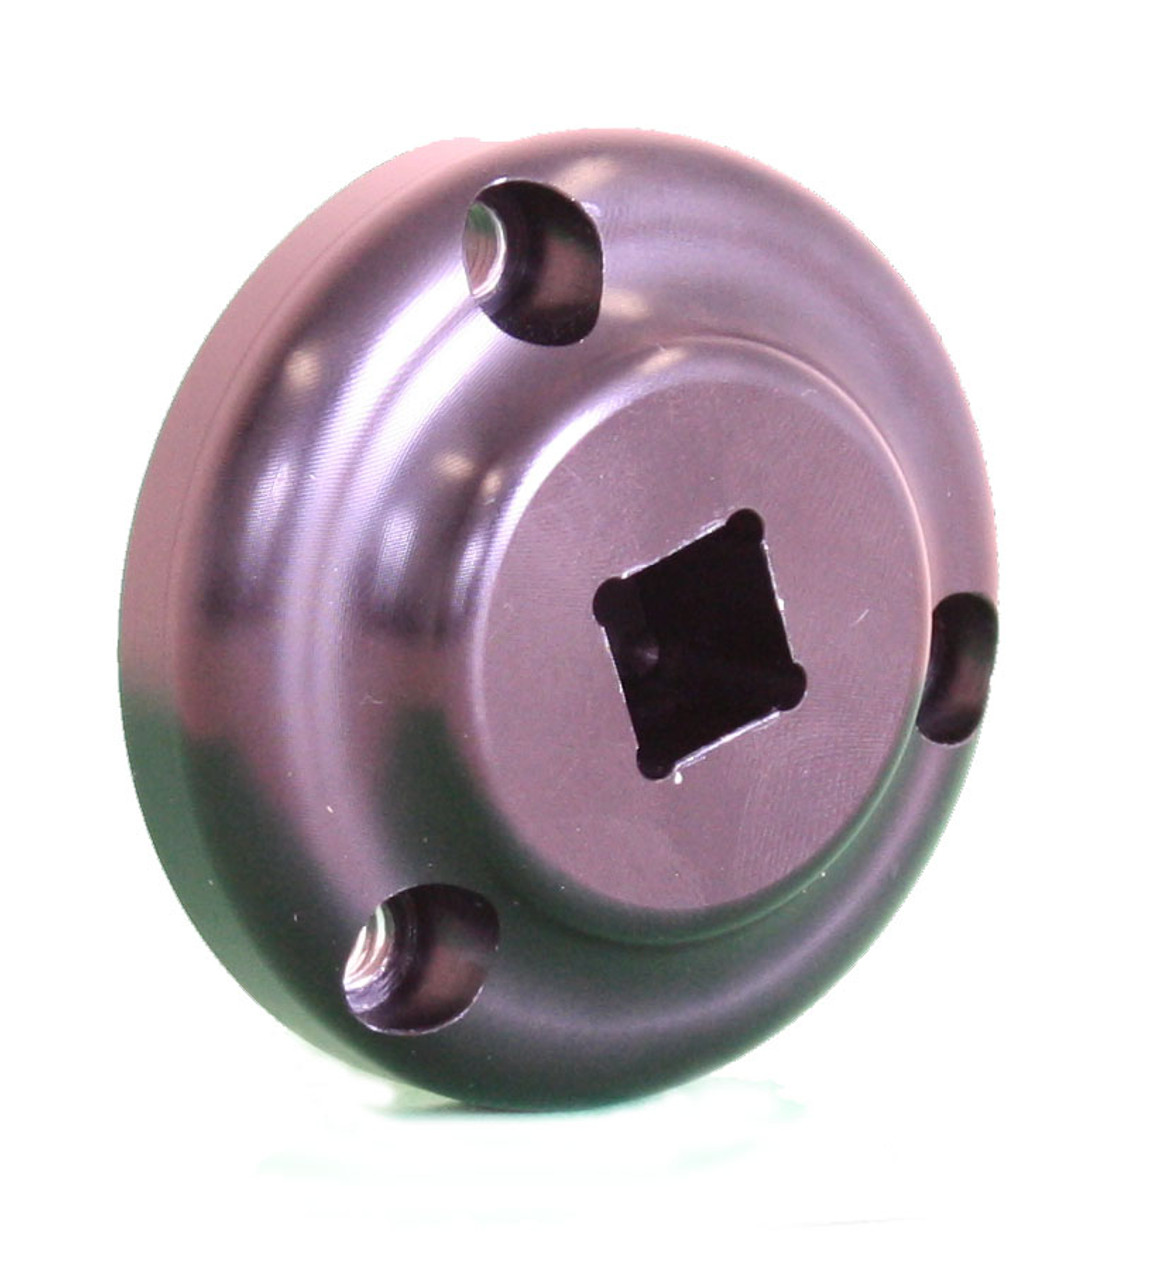 DIFFERENTIAL TORQUE ADAPTER FOR WIDE FIVE DRIVE FLANGES